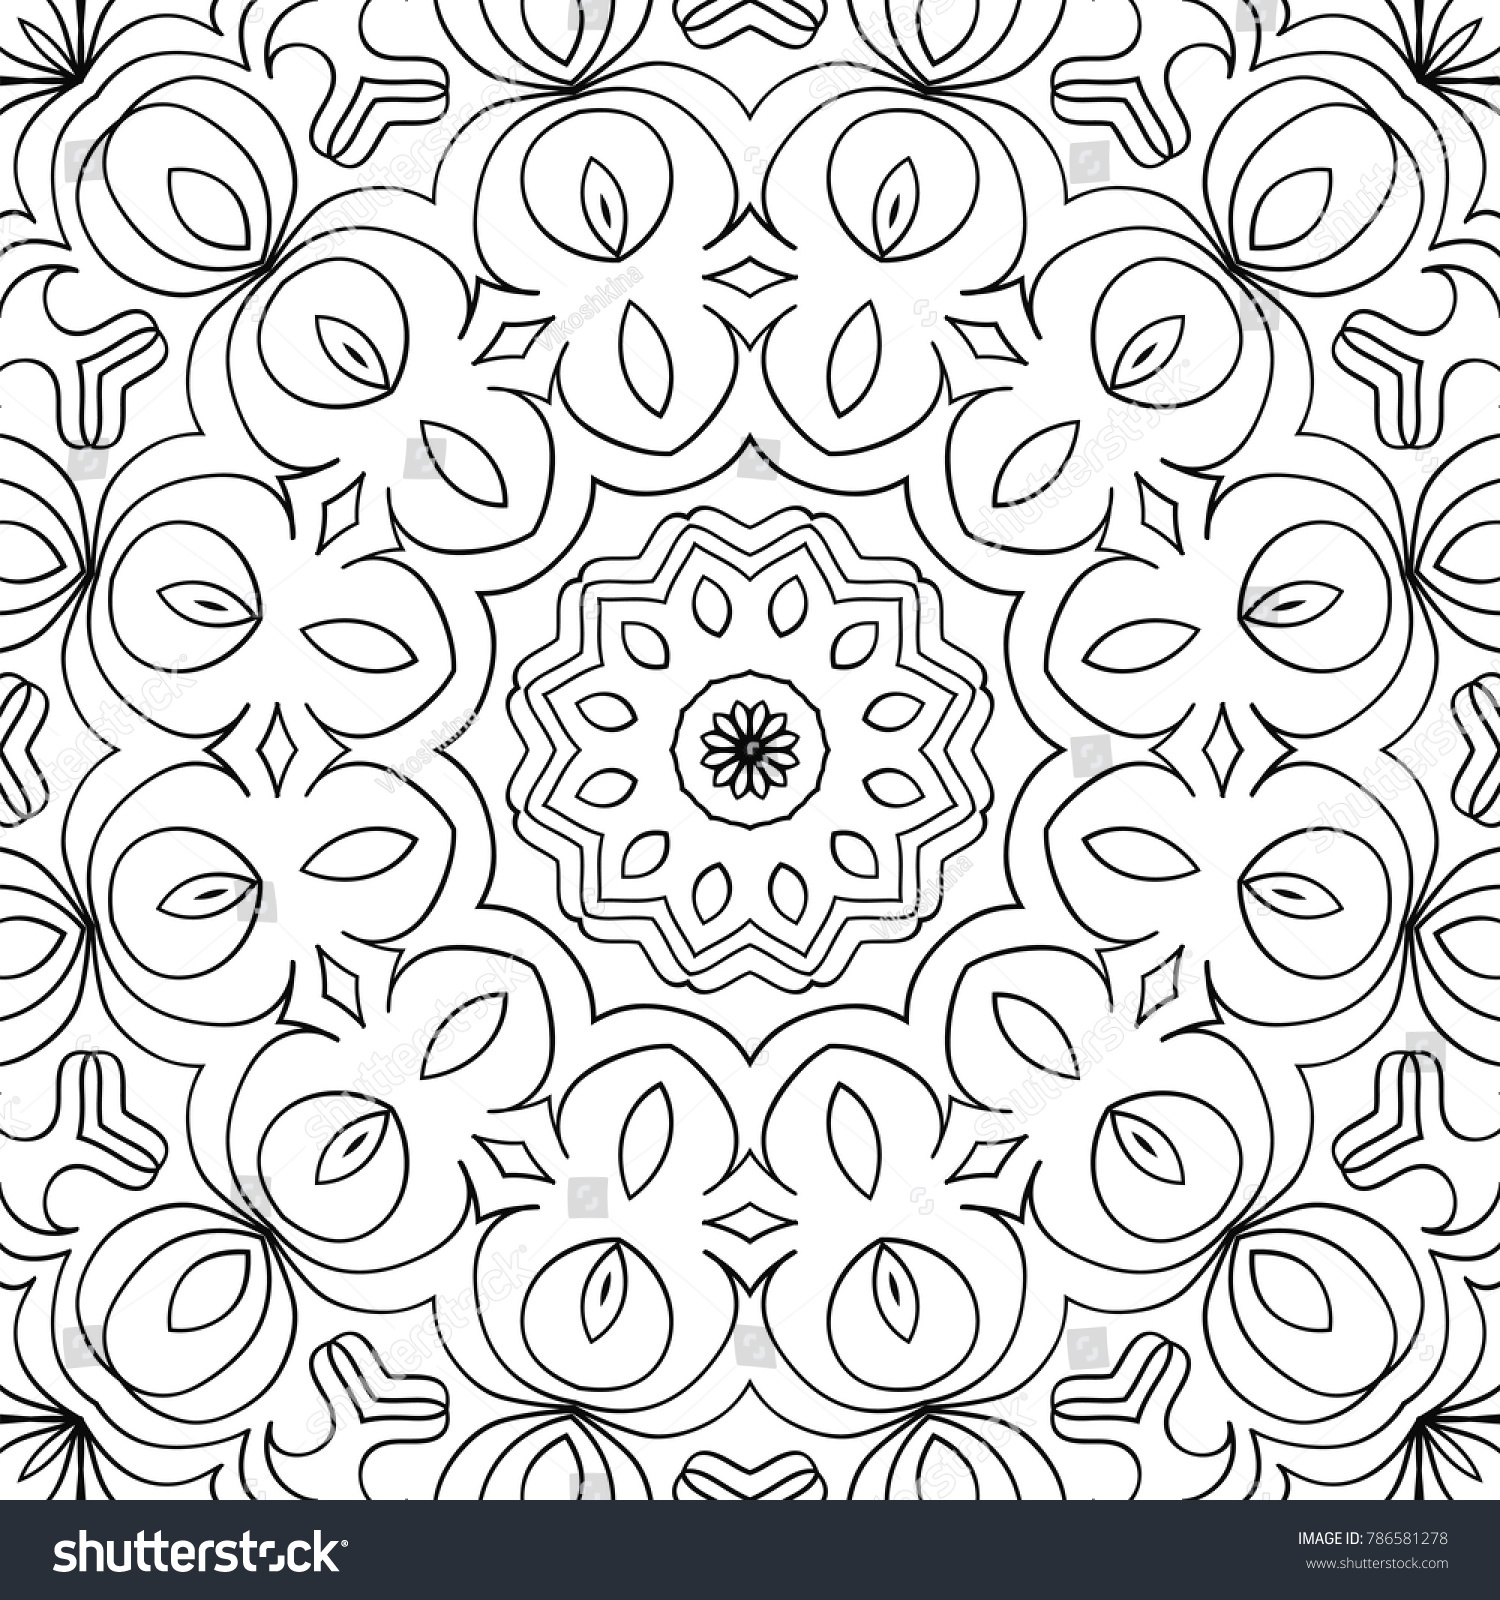 Arabesque Seamless Pattern Coloring Page Adults Stock Vector HD ...